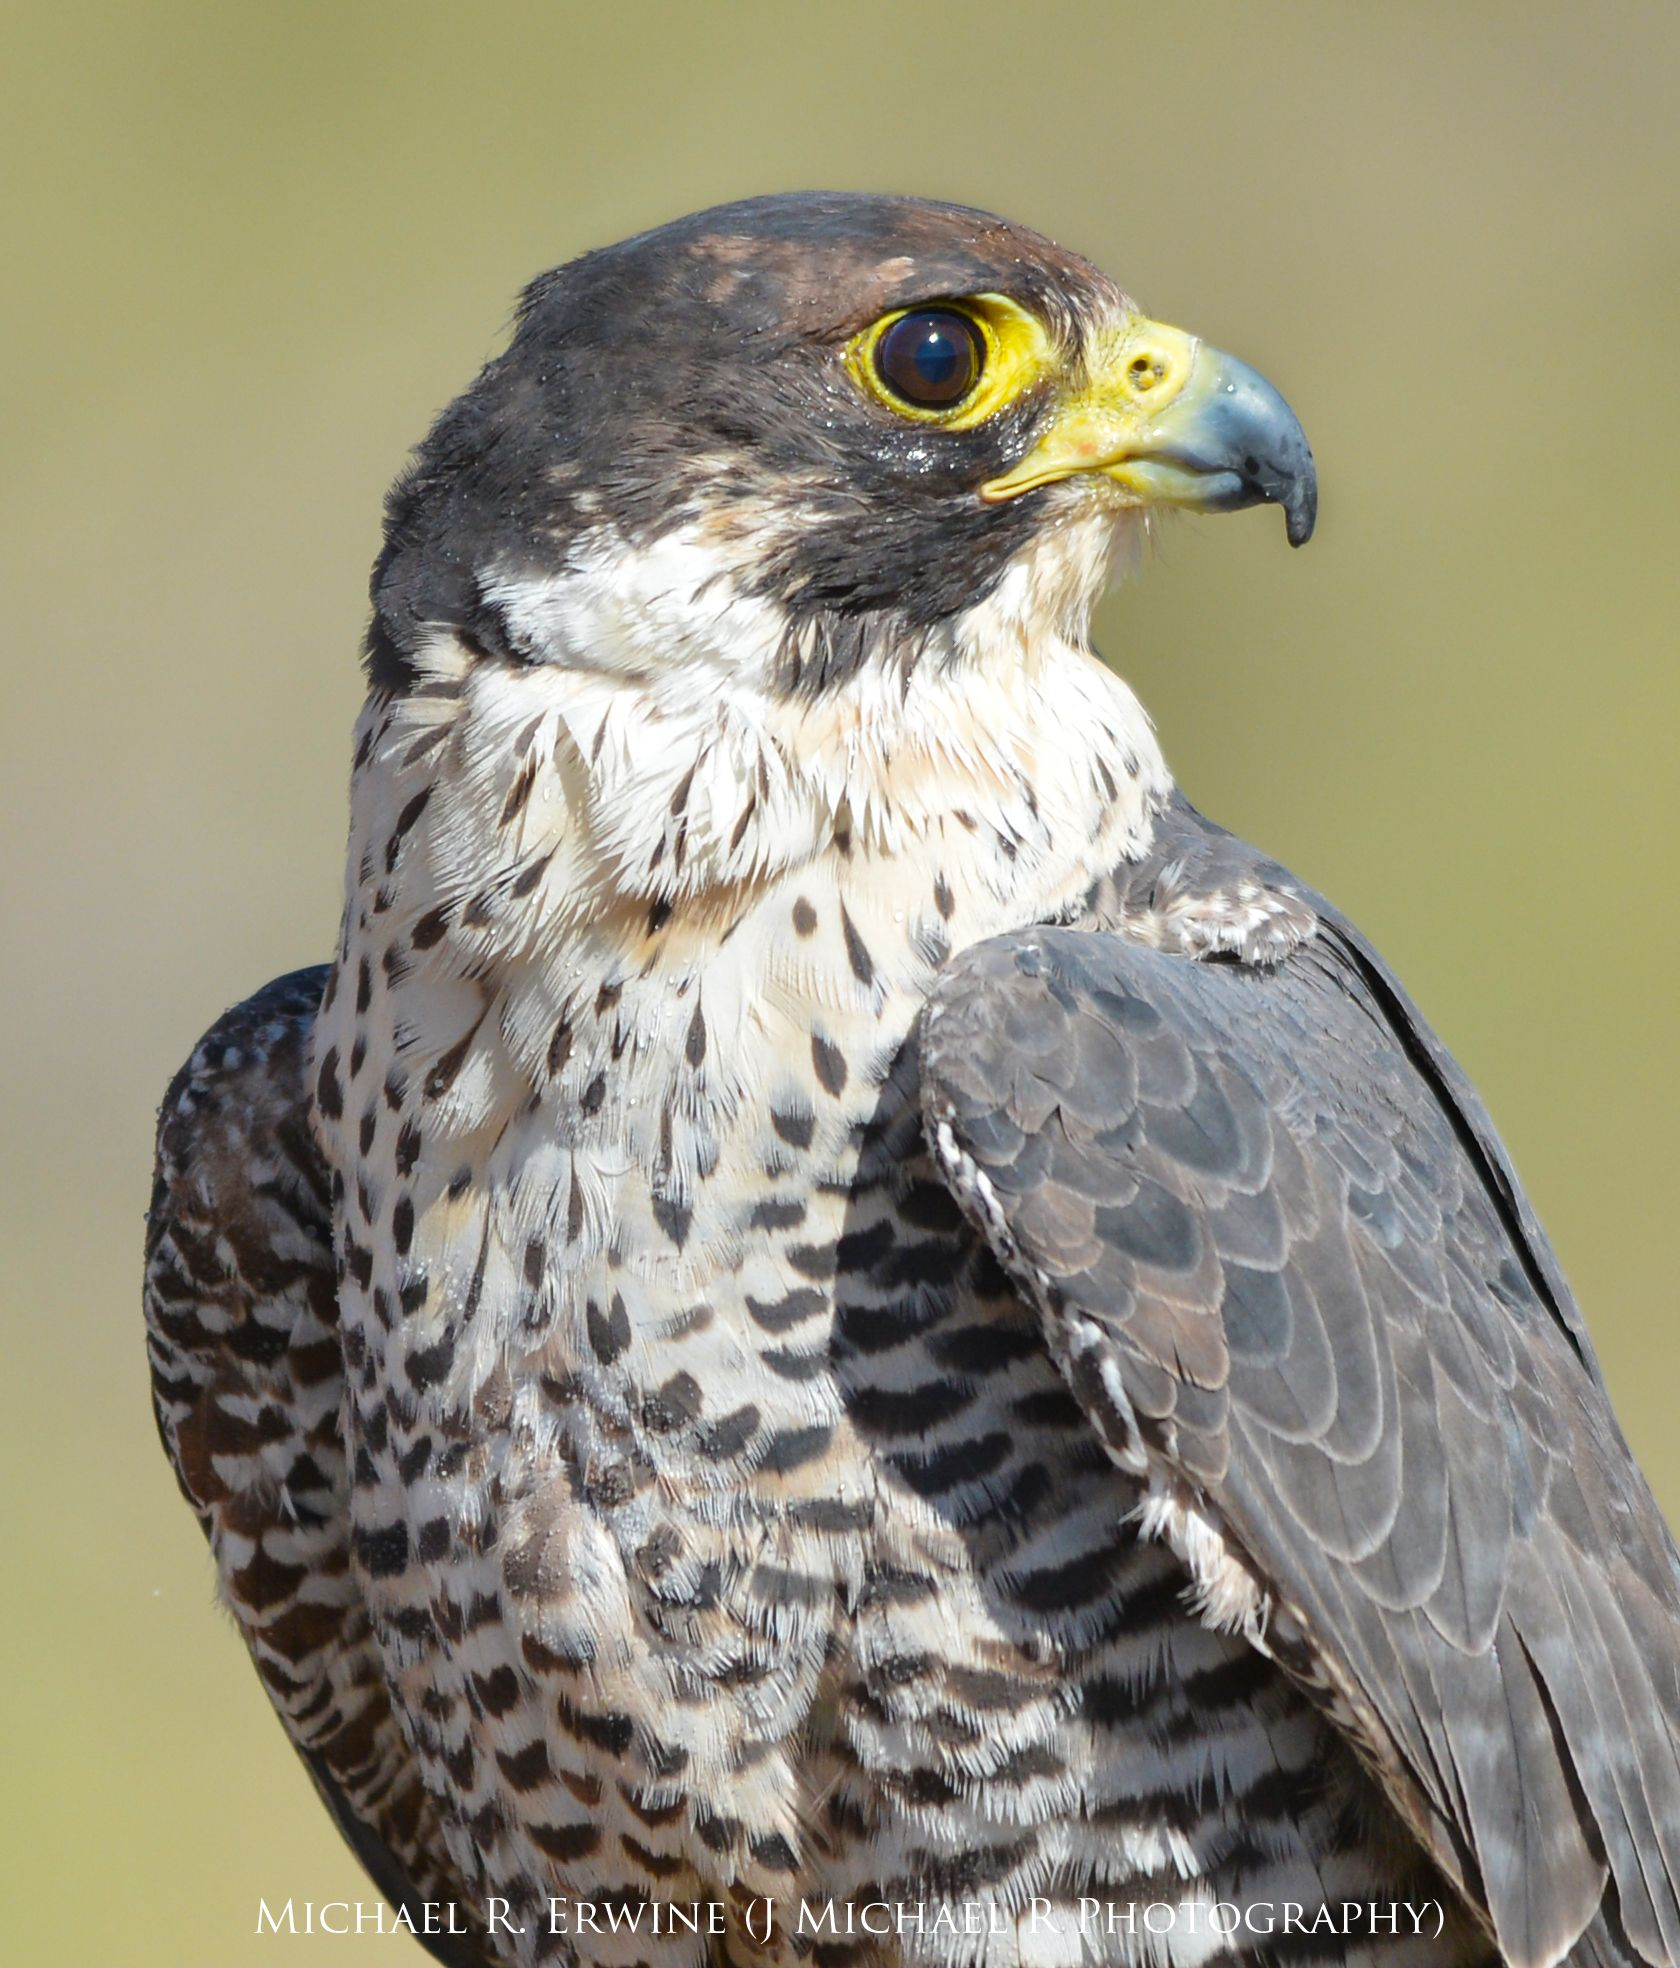 Location Animal Ark Reno Nv Animals Peregrine Falcon Barbary